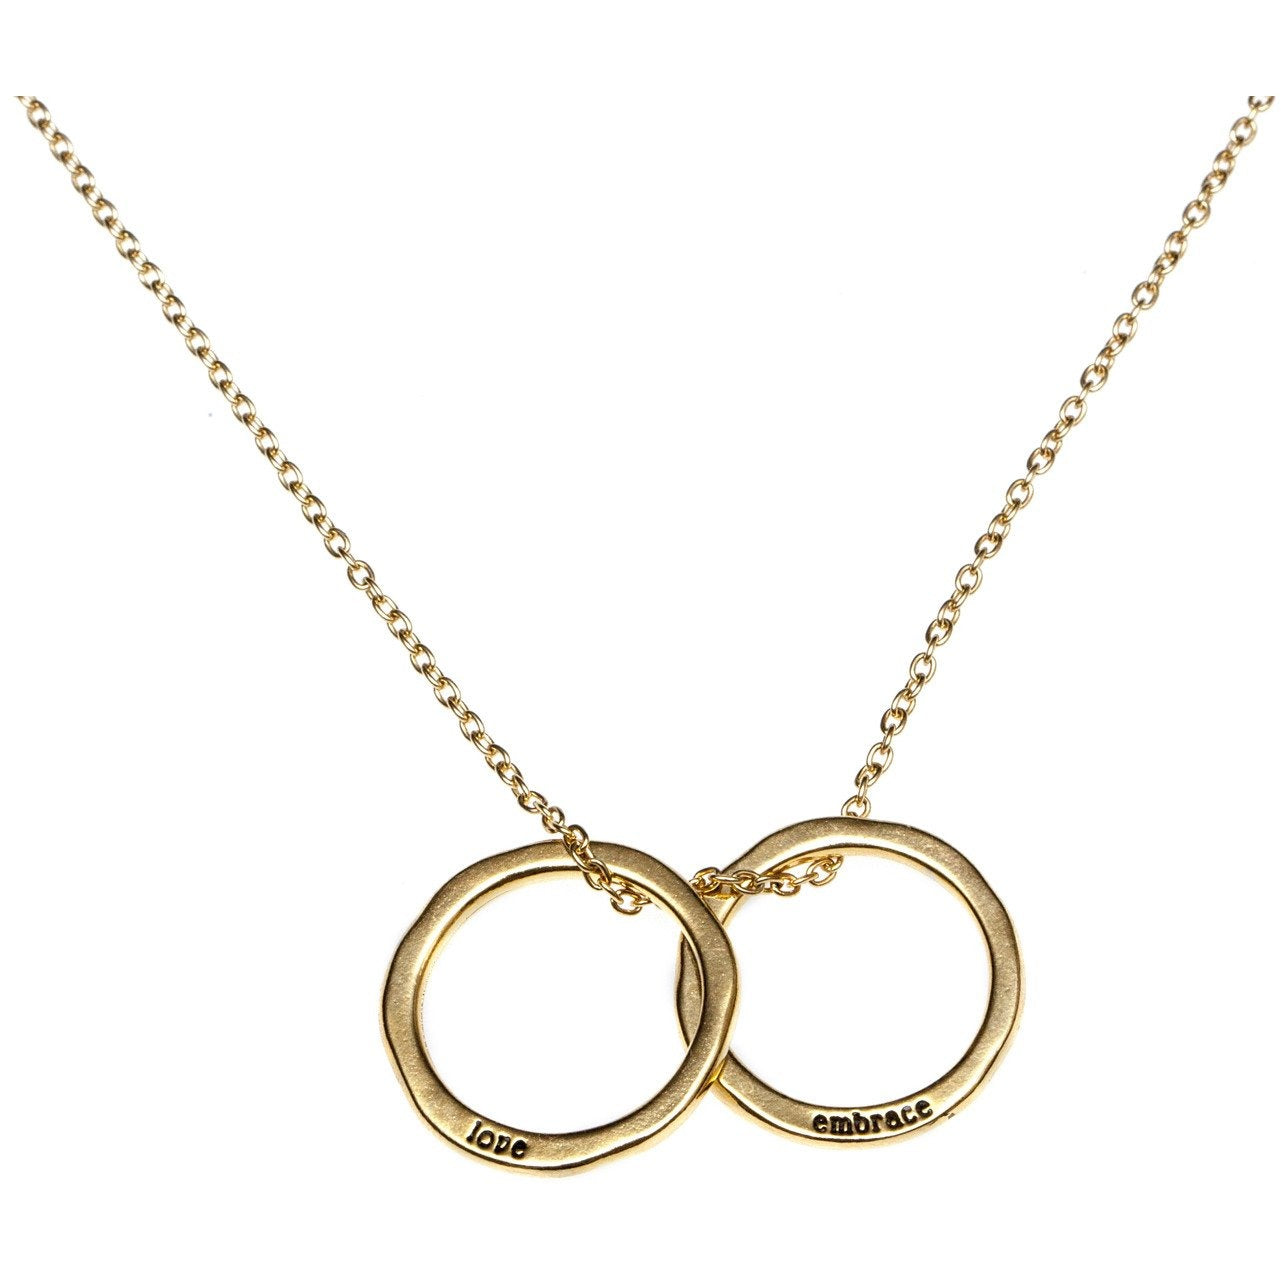 Love and Embrace Circle Necklace